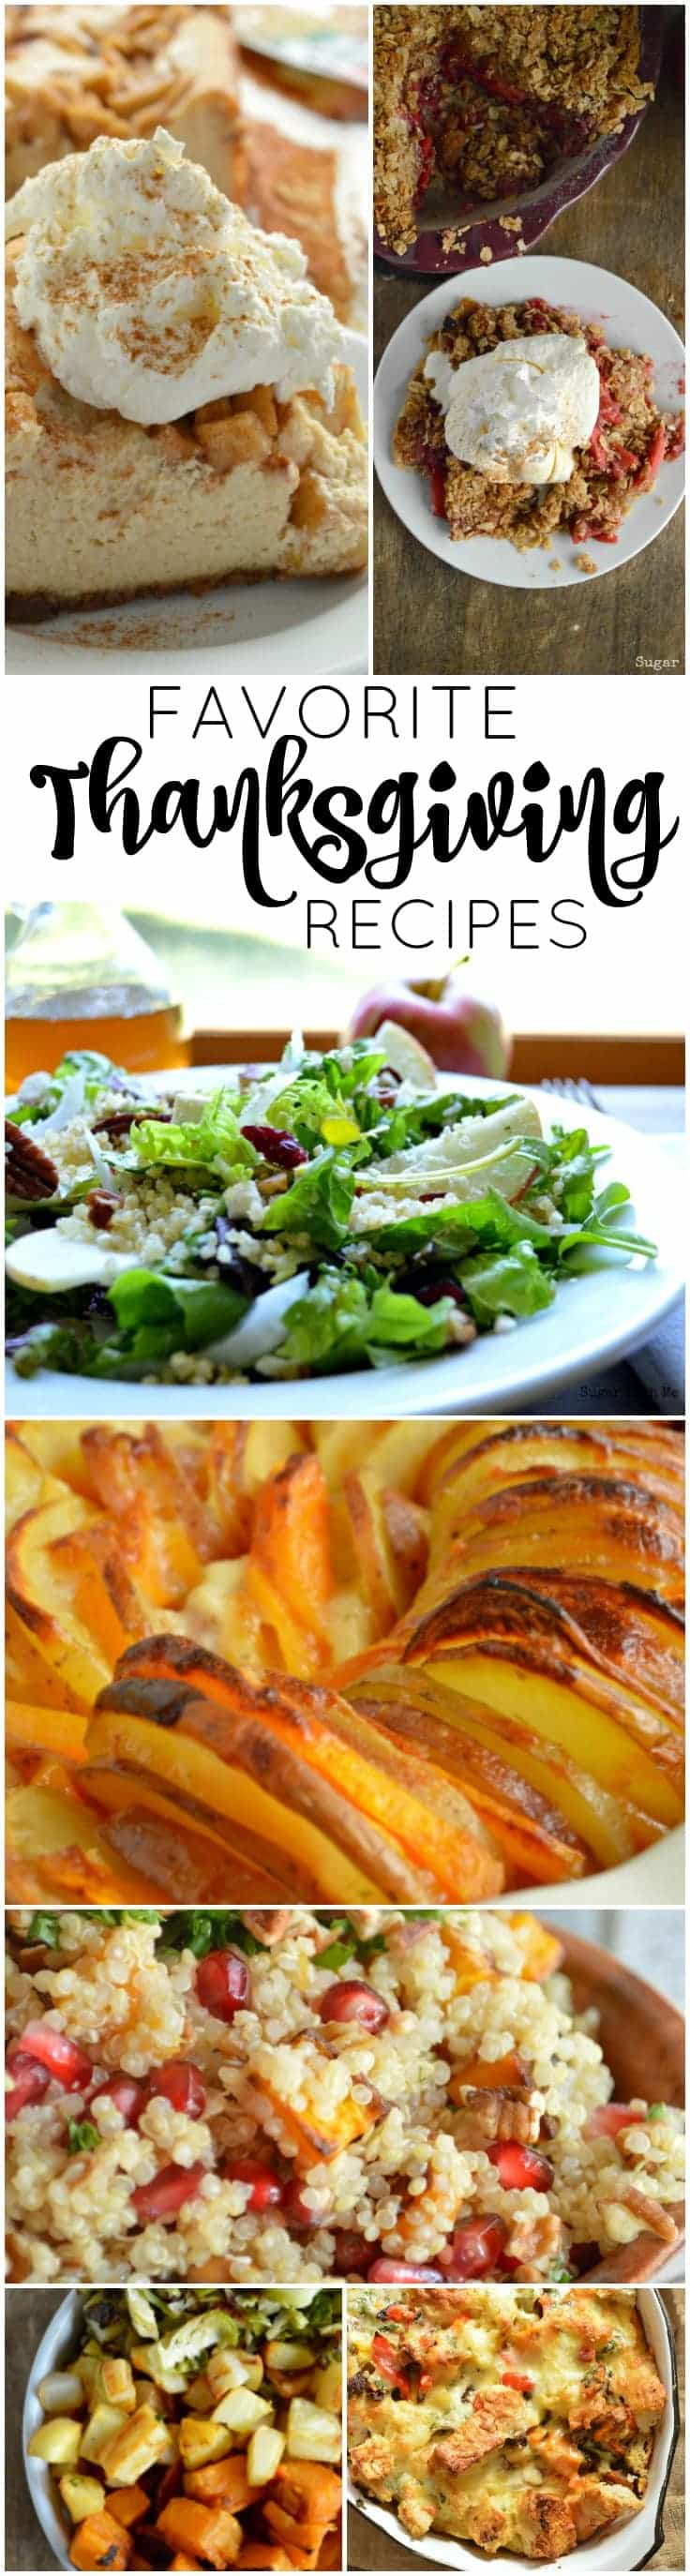 My Favorite Thanksgiving Recipes! All the good stuff from salad to dessert and everything in between!